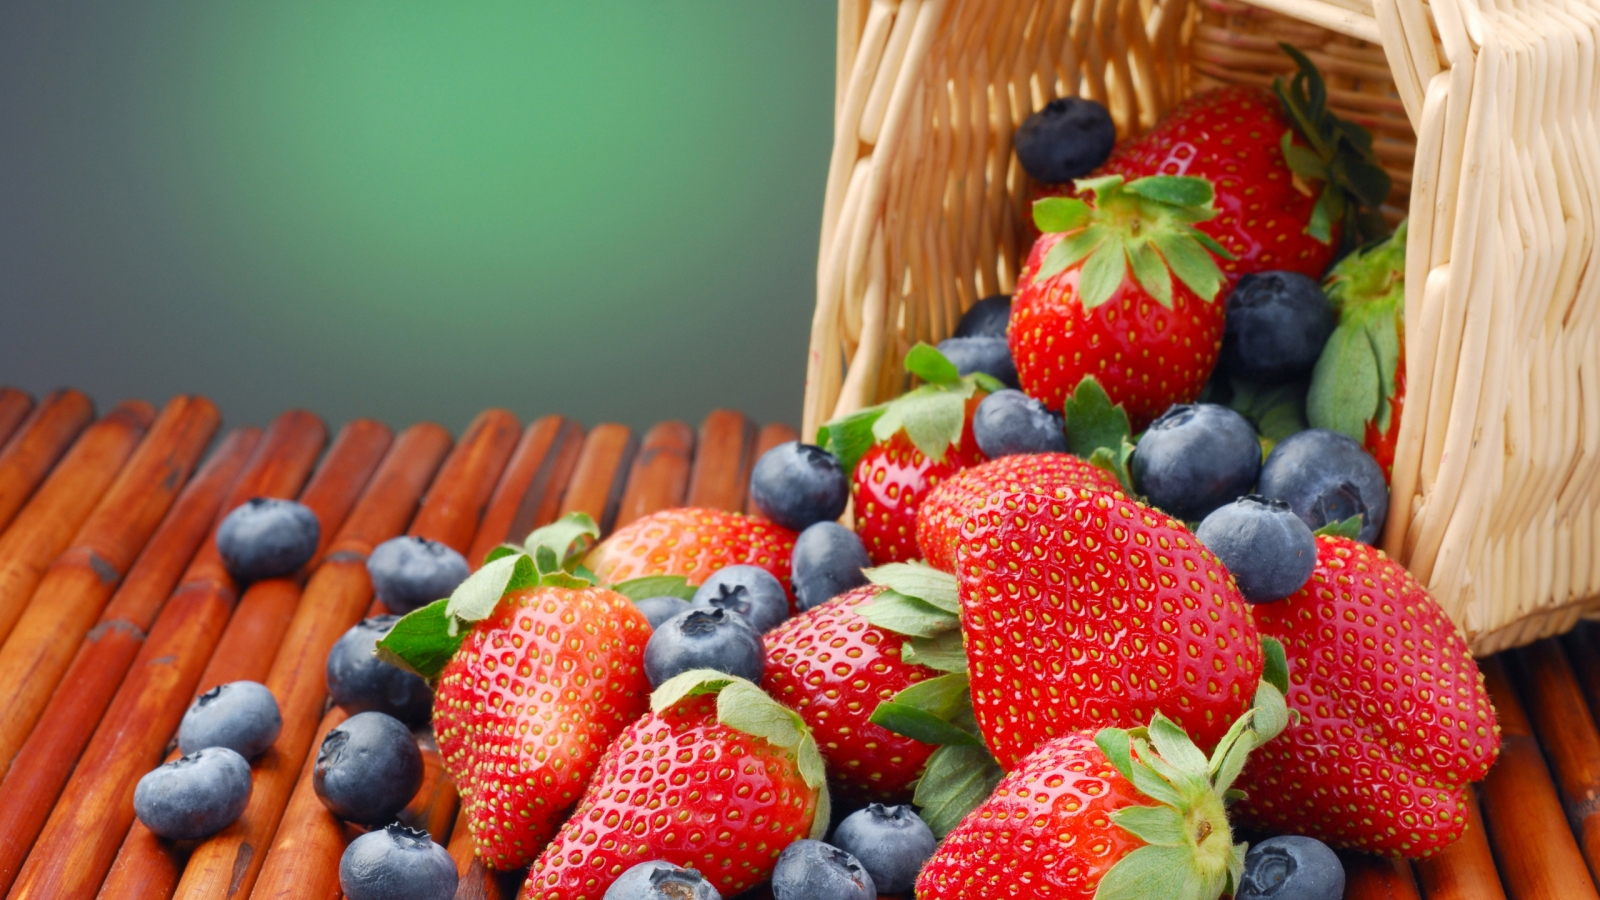 Blueberry and Strawberry for 1600 x 900 HDTV resolution